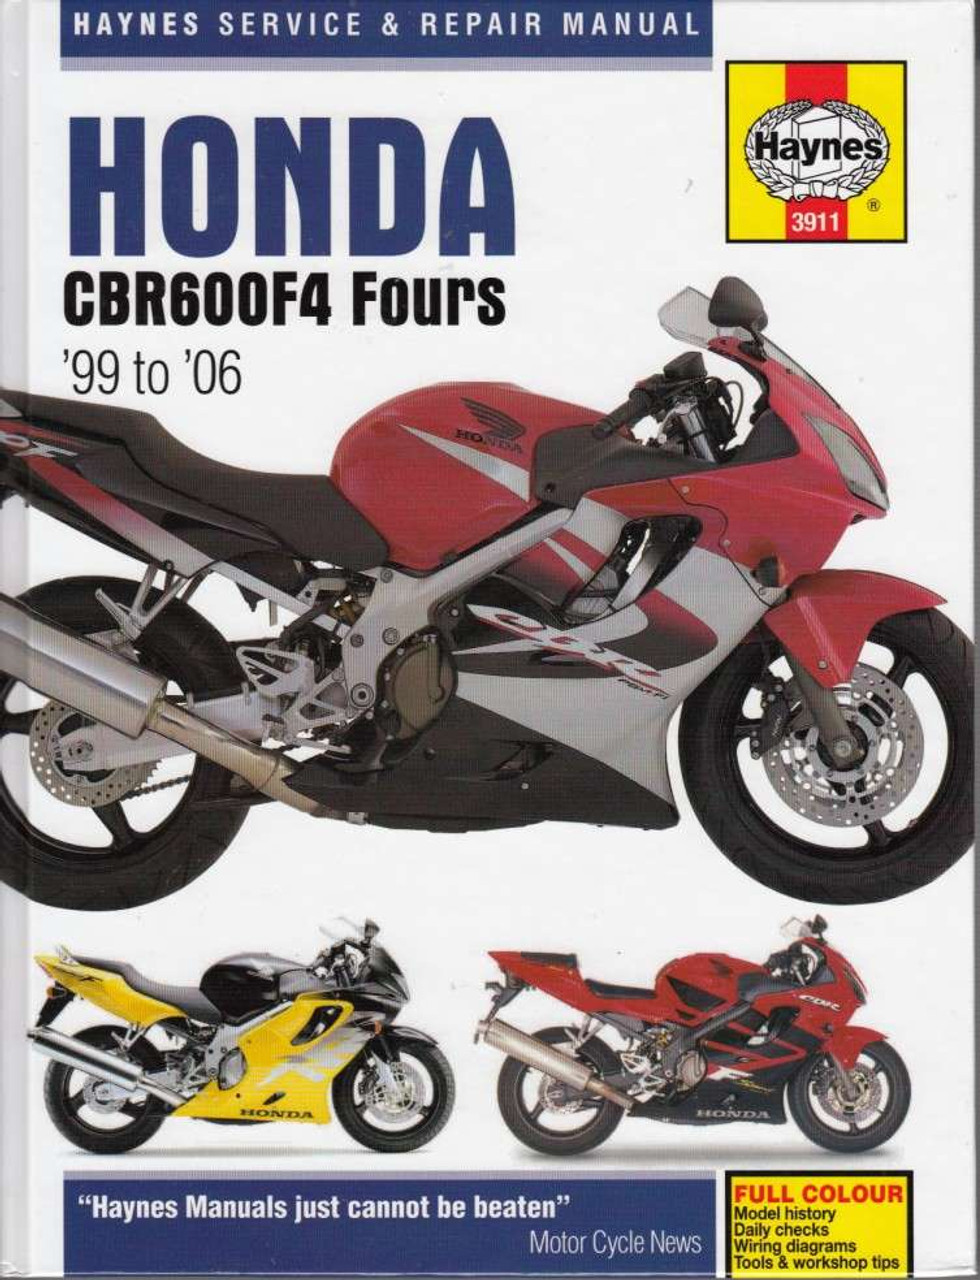 b8617b honda cbr600f4 fours repair manual 35474 1374803340 jpg c 2 imbypass on imbypass on [ 980 x 1280 Pixel ]